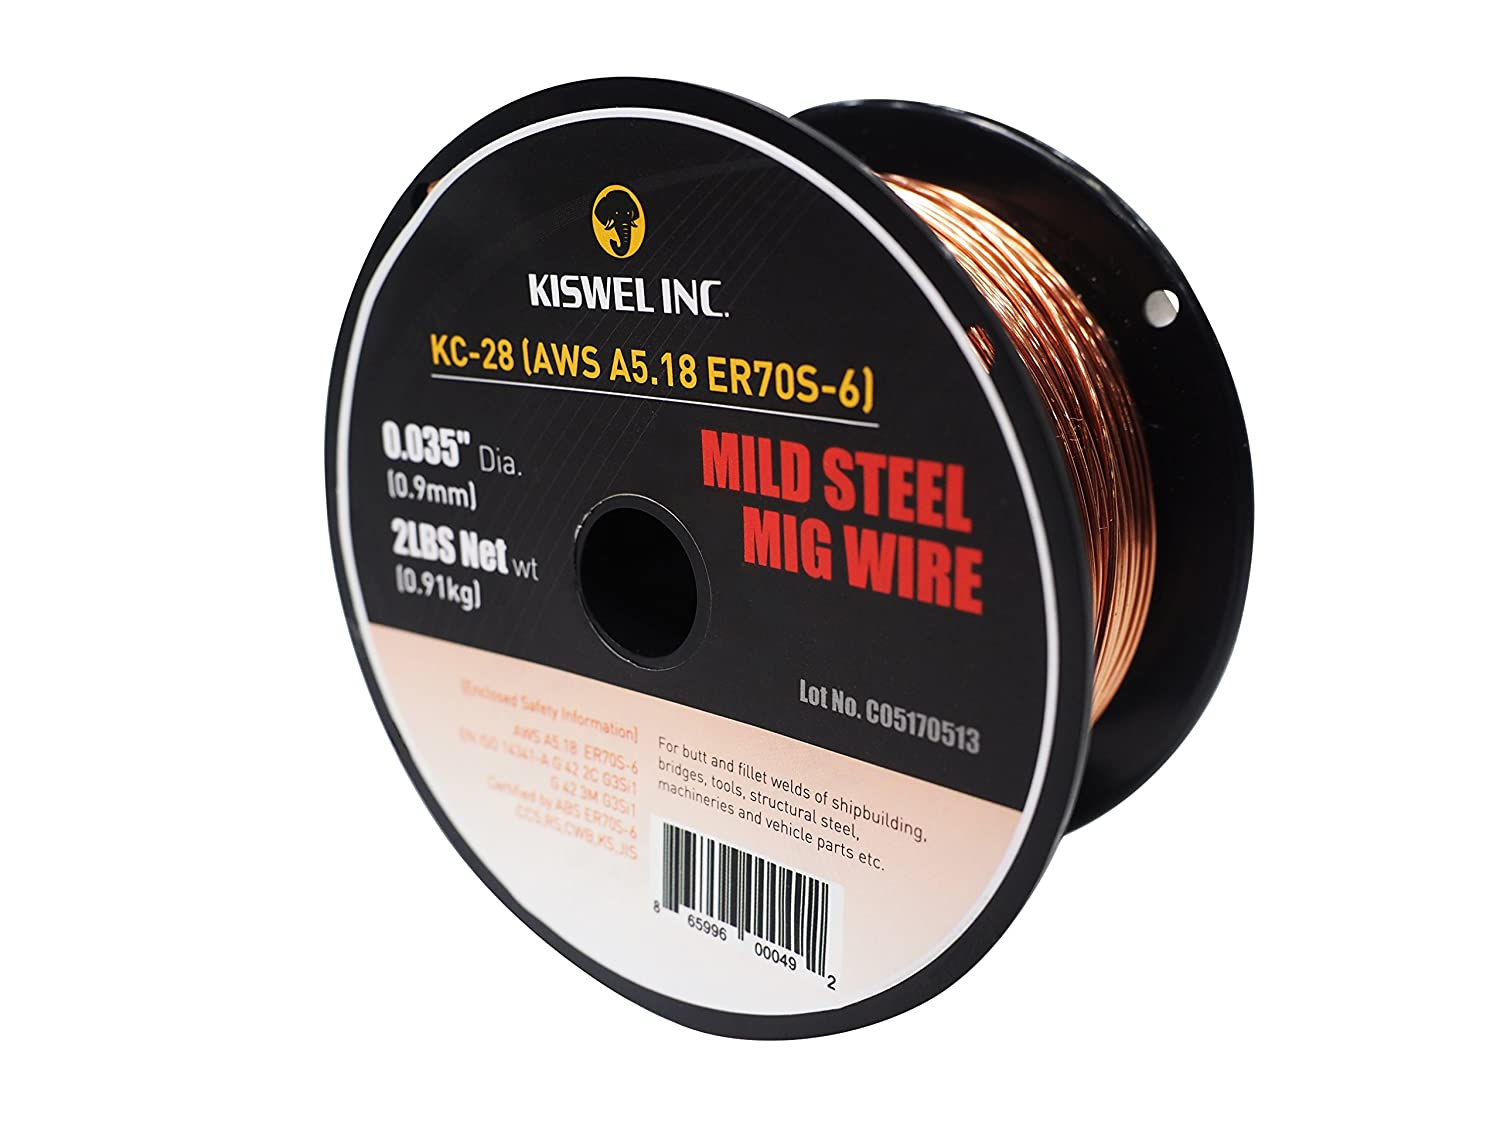 Dia 2 lbs Mild Steel Mig Copper Coated Solid Wire Gas Metal Arc Welding Wire Spool Made in USA Kiswel USA KC-28 ER70S-6 0.035 in